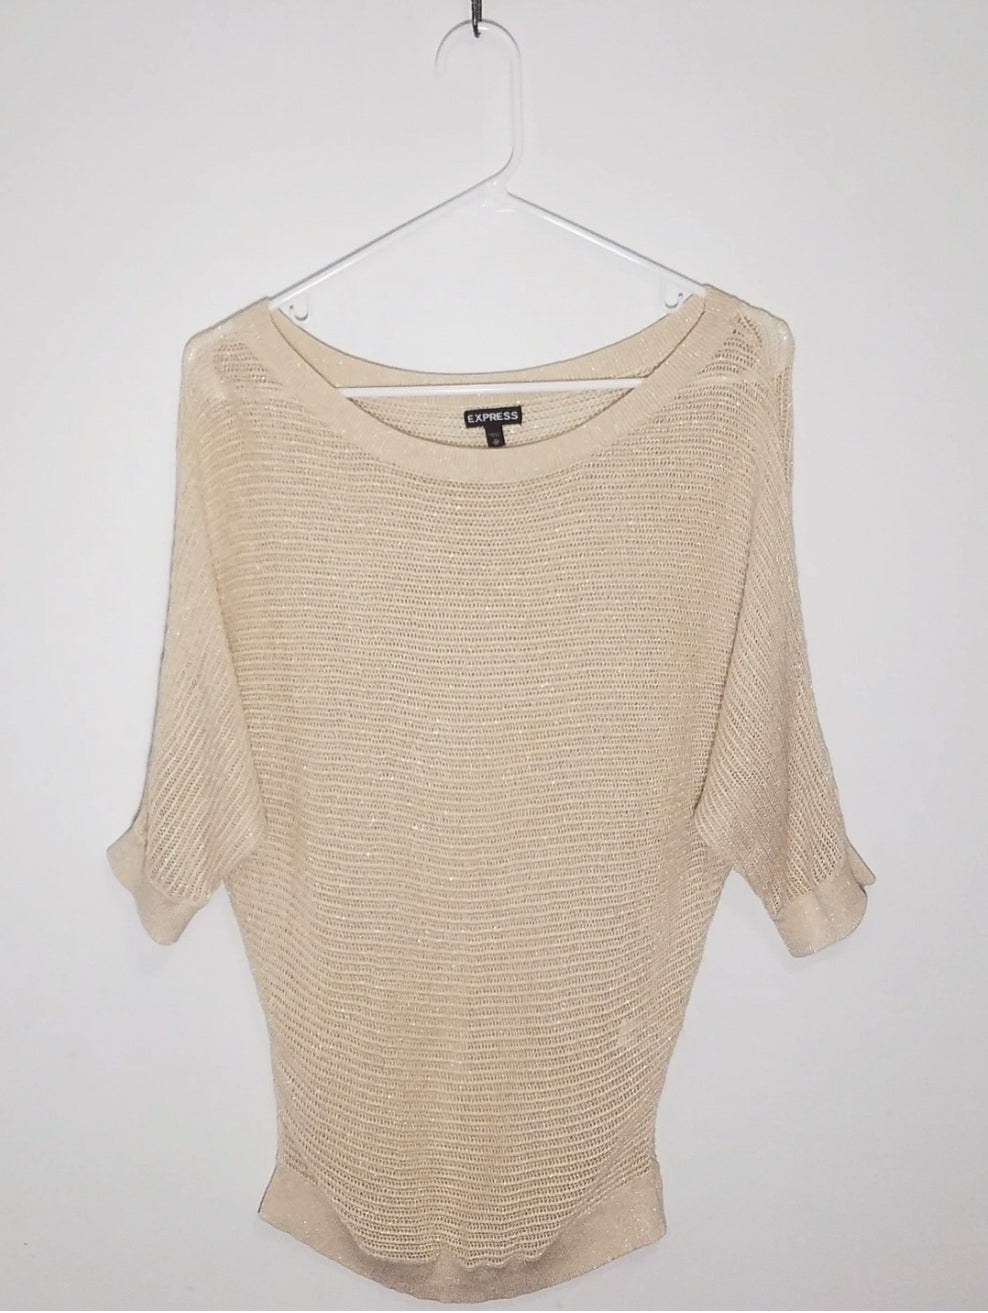 Express Sweater - XS